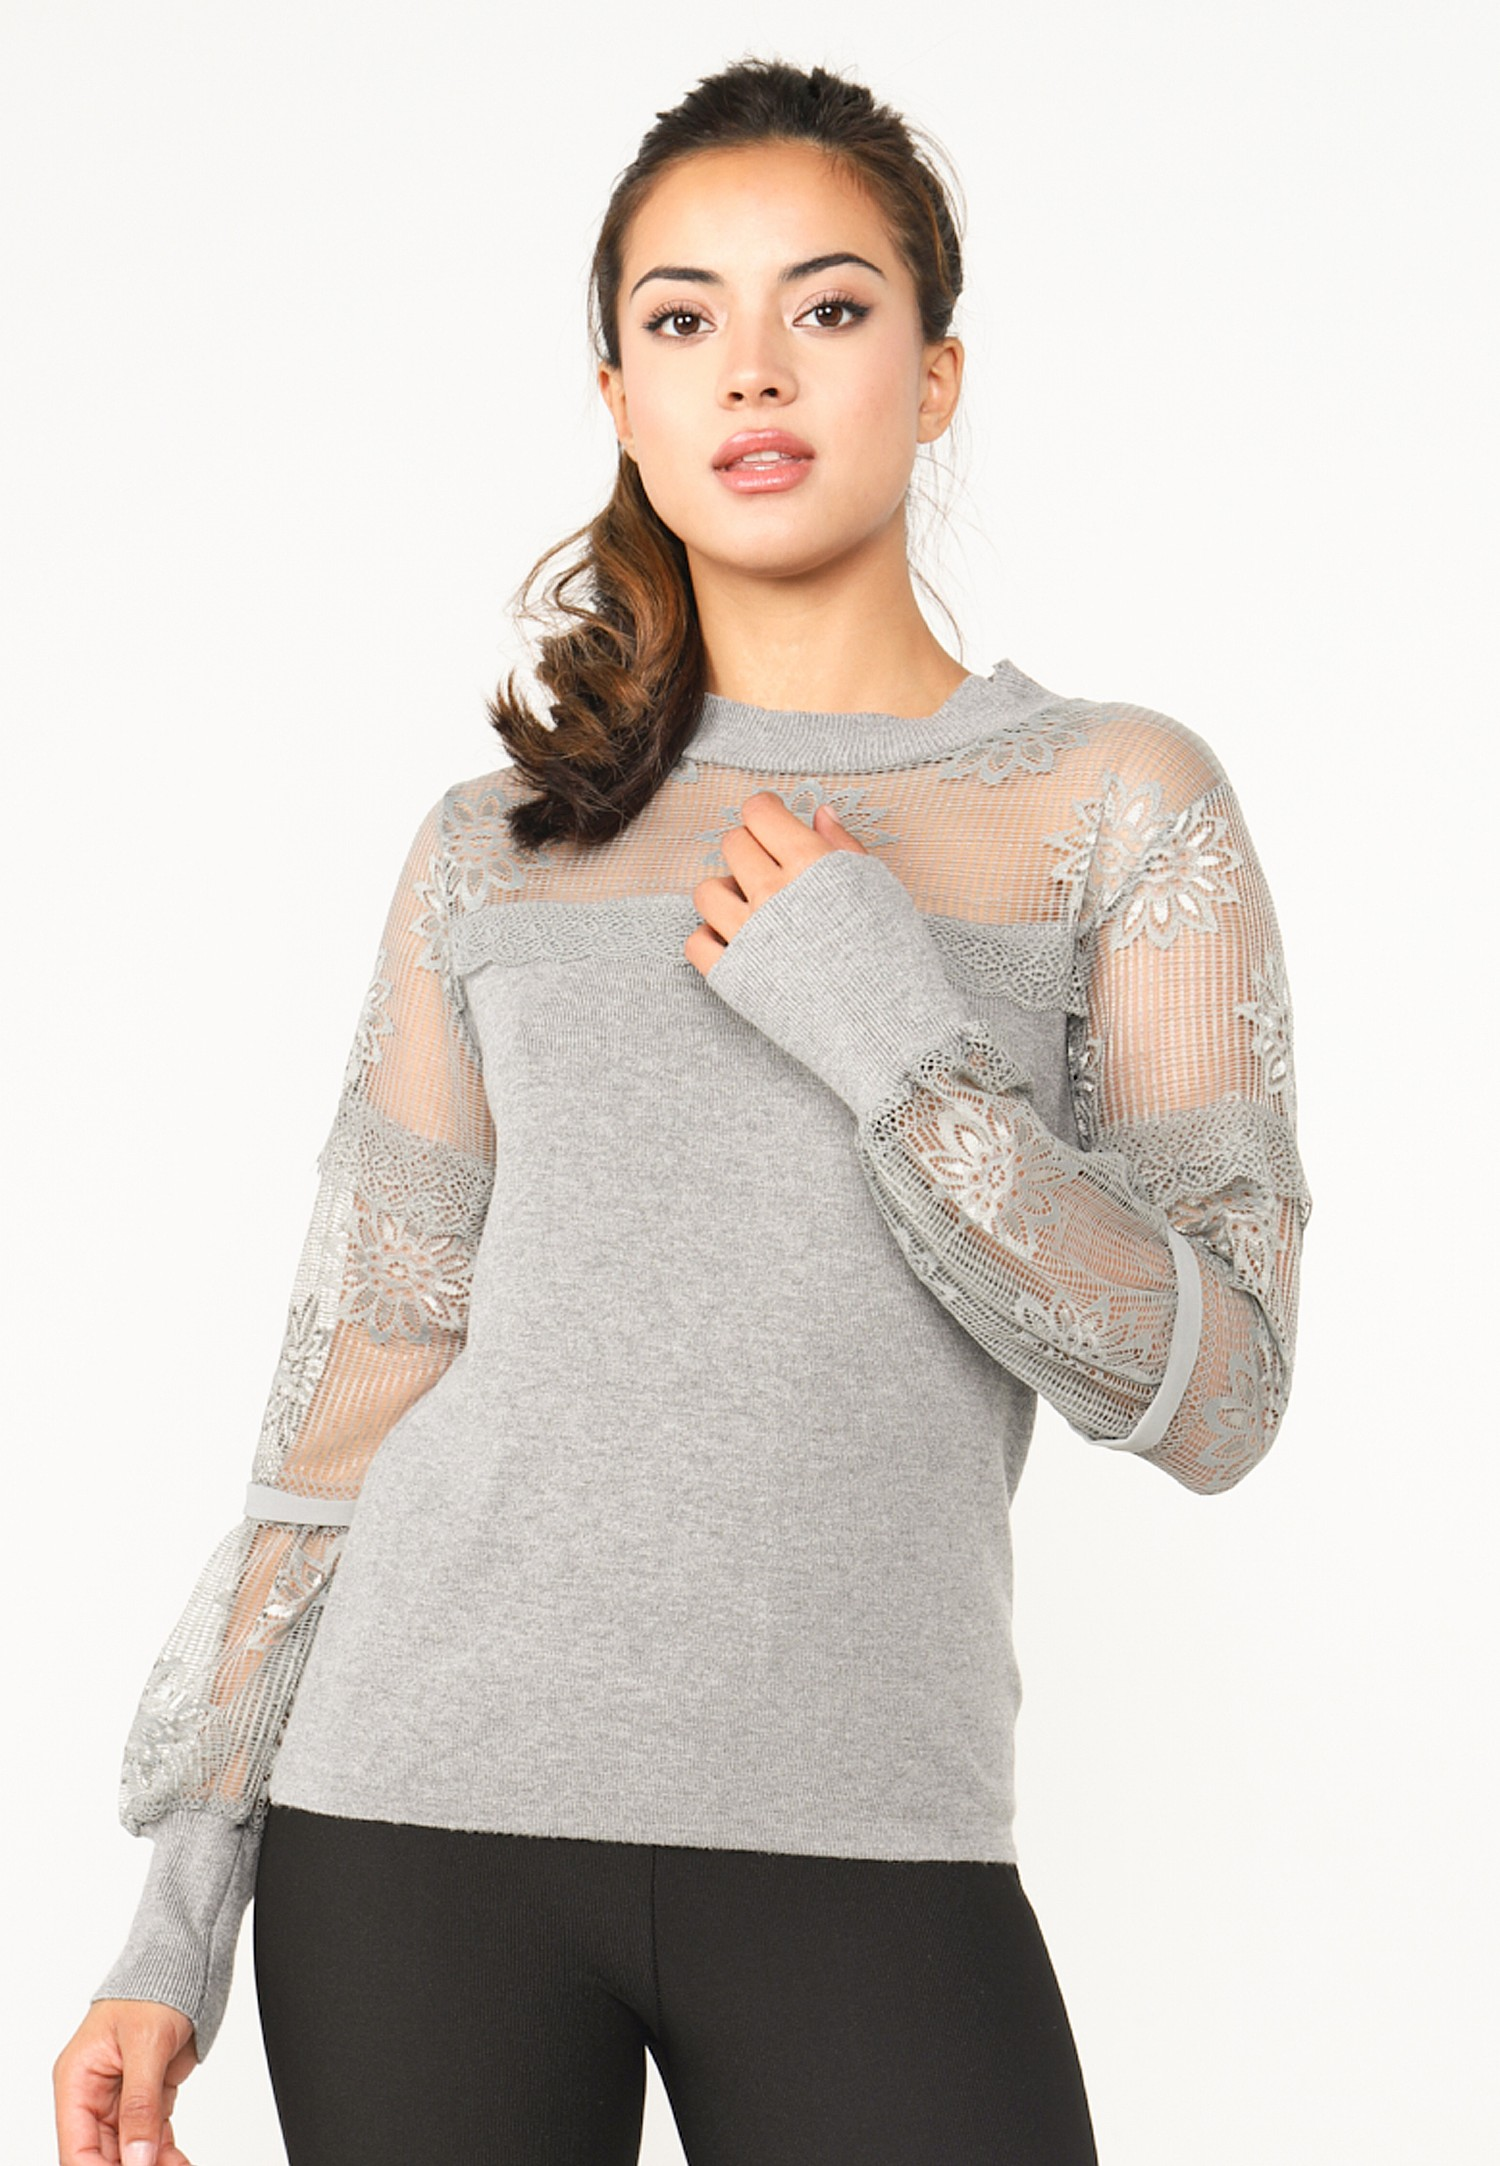 Image of Light Grey Lace Long Sleeve Top Clothing and Accessories - Clothing female ANGELEYE Collection 5055452052522